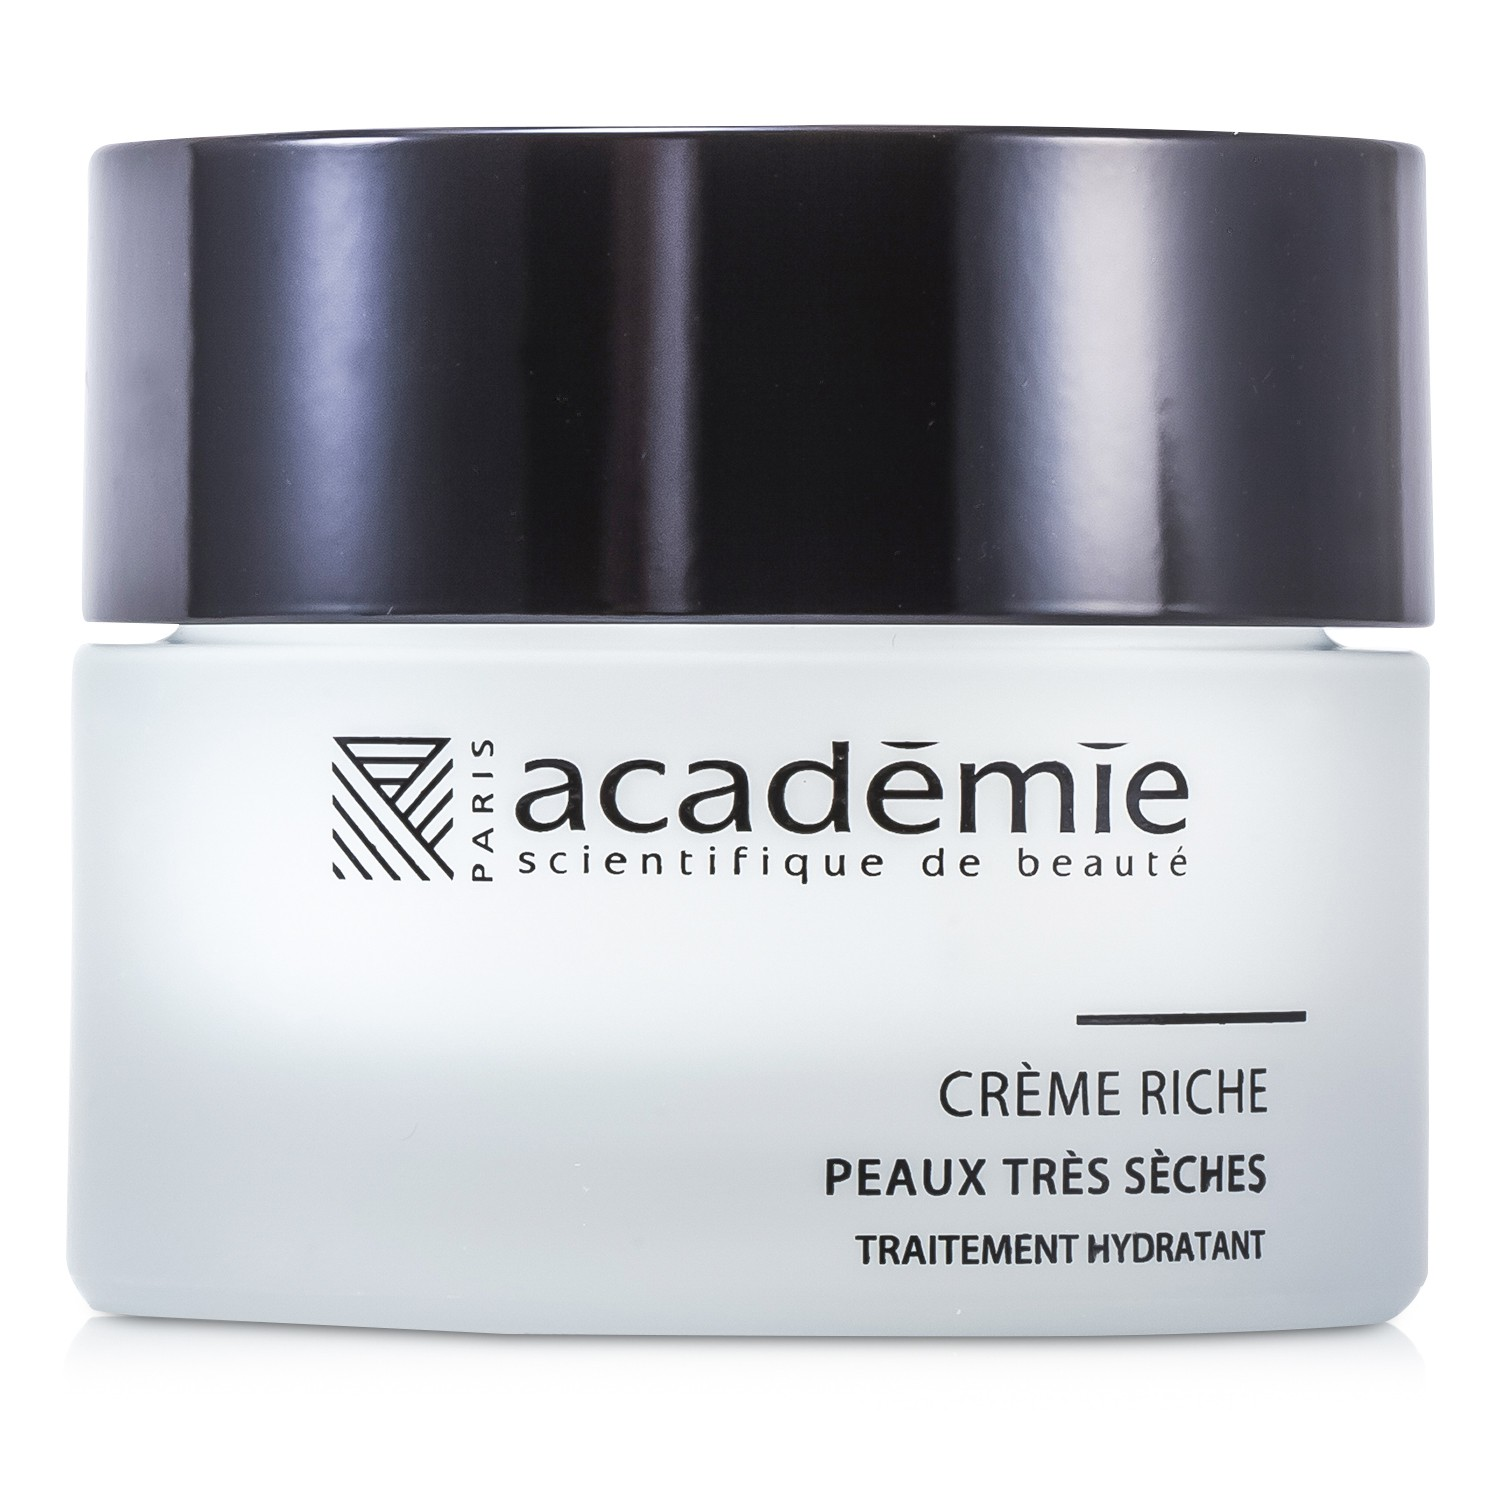 Academie 100% Hydraderm Extra Rich Cream 6 Pack - Perricone MD Intensive Pore Minimizer 4 oz